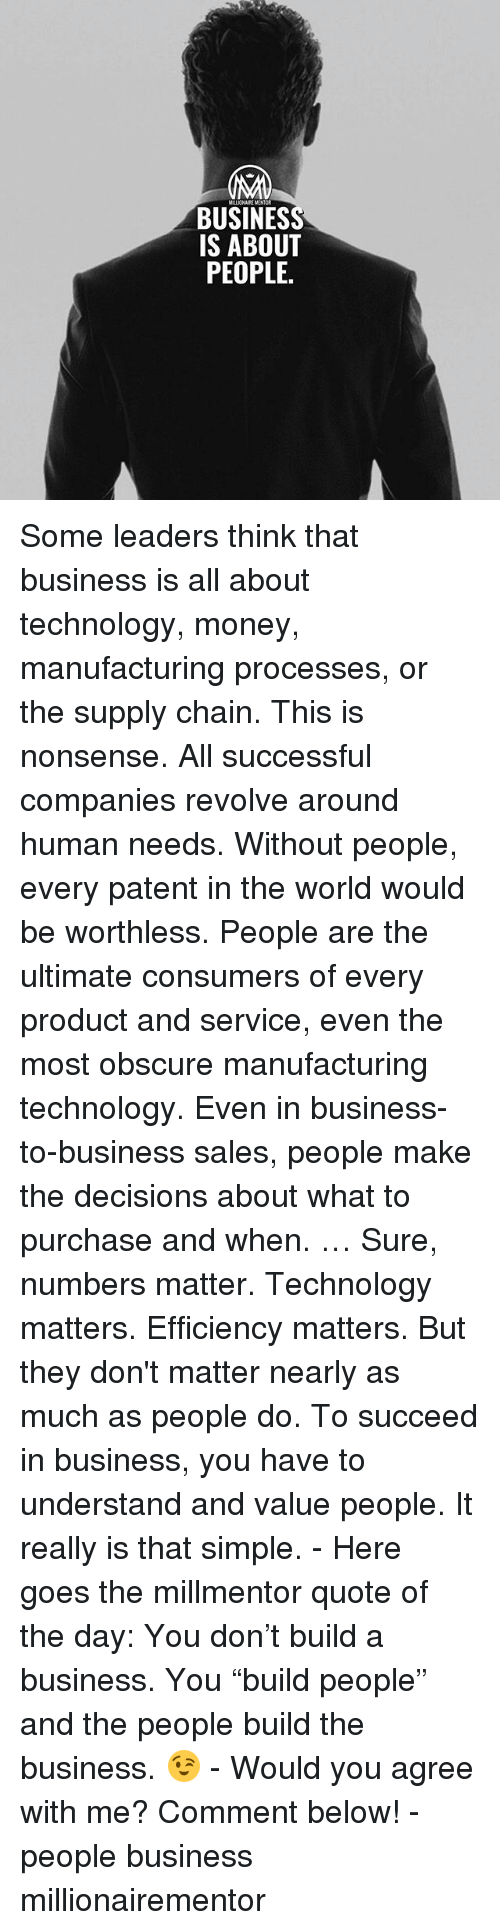 """Memes, Money, and Business: MILLIONAIRE MENTOR  BUSINESS  IS ABOUT  PEOPLE. Some leaders think that business is all about technology, money, manufacturing processes, or the supply chain. This is nonsense. All successful companies revolve around human needs. Without people, every patent in the world would be worthless. People are the ultimate consumers of every product and service, even the most obscure manufacturing technology. Even in business-to-business sales, people make the decisions about what to purchase and when. … Sure, numbers matter. Technology matters. Efficiency matters. But they don't matter nearly as much as people do. To succeed in business, you have to understand and value people. It really is that simple. - Here goes the millmentor quote of the day: You don't build a business. You """"build people"""" and the people build the business. 😉 - Would you agree with me? Comment below! - people business millionairementor"""